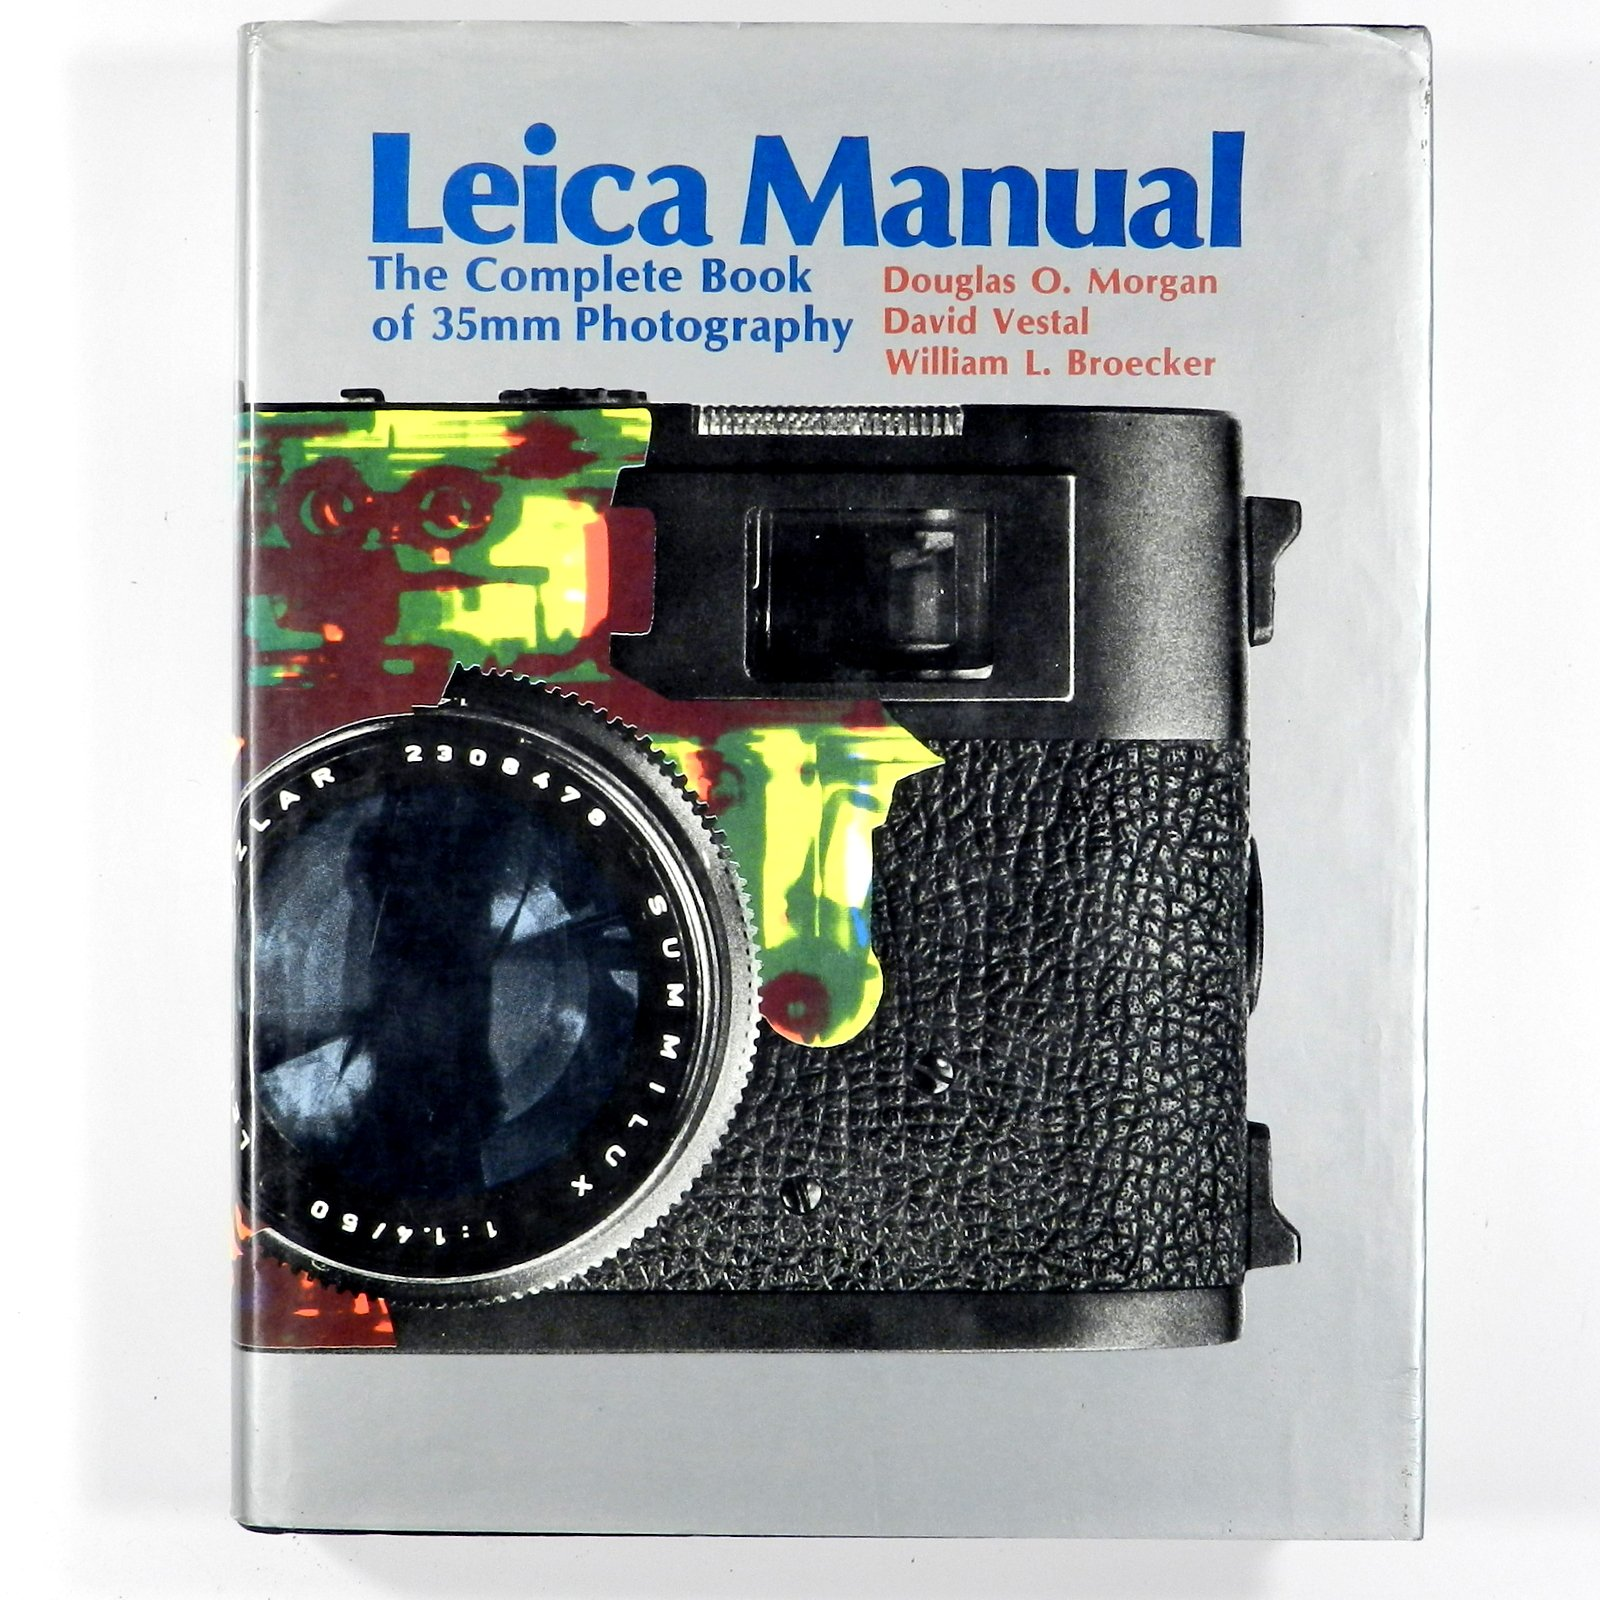 Leica manual: The complete book of 35mm photography: Amazon.co.uk: Douglas  O Morgan: 9780871000033: Books